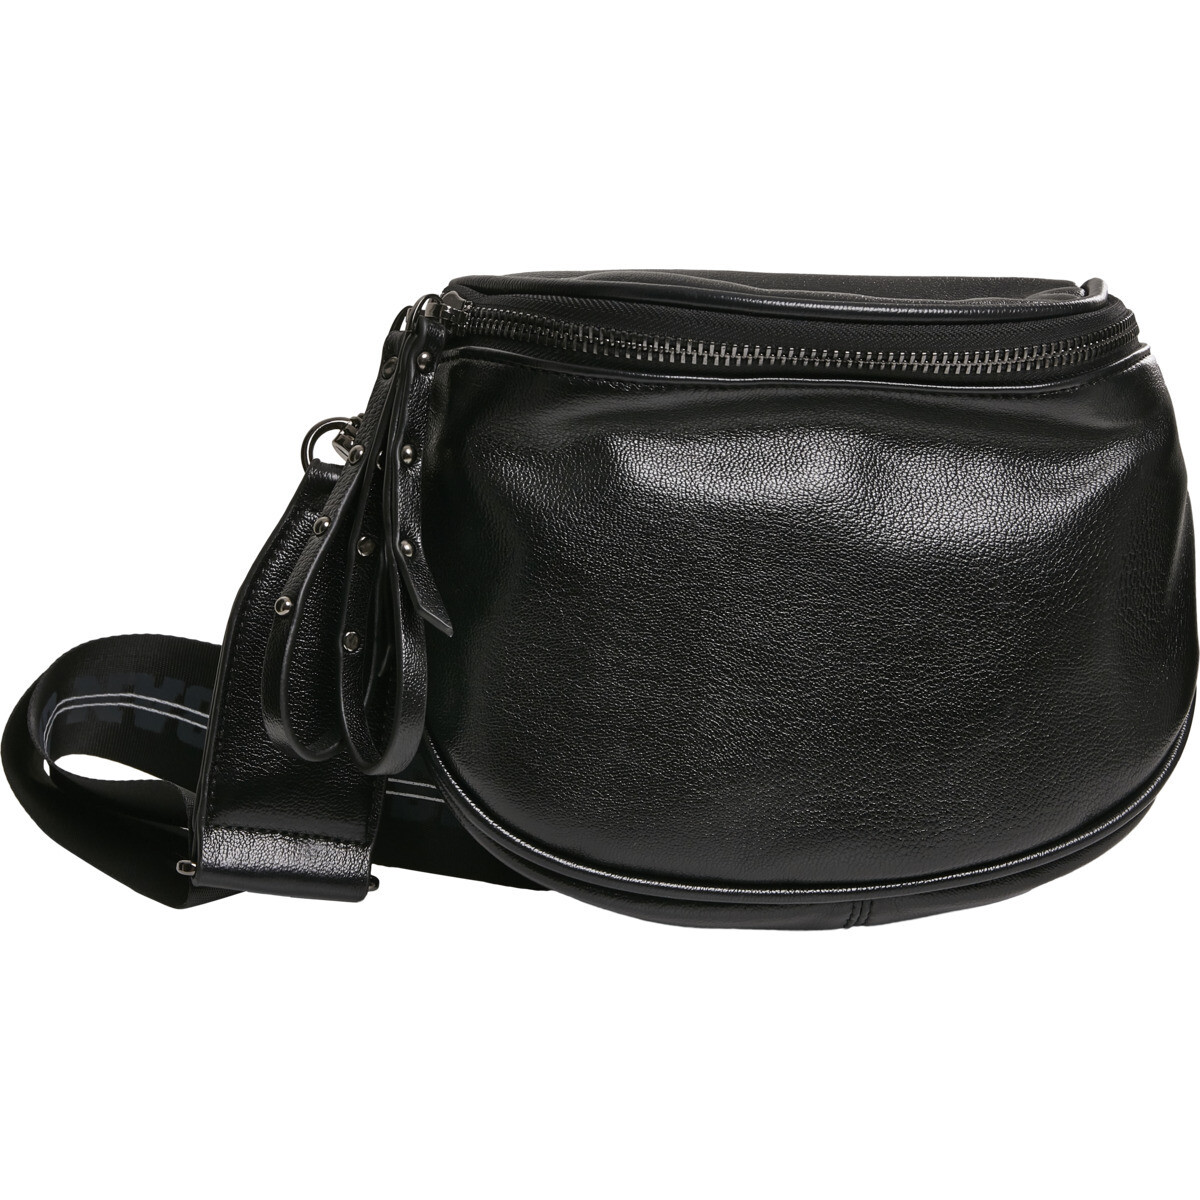 Imitation Leather Crossover Bag